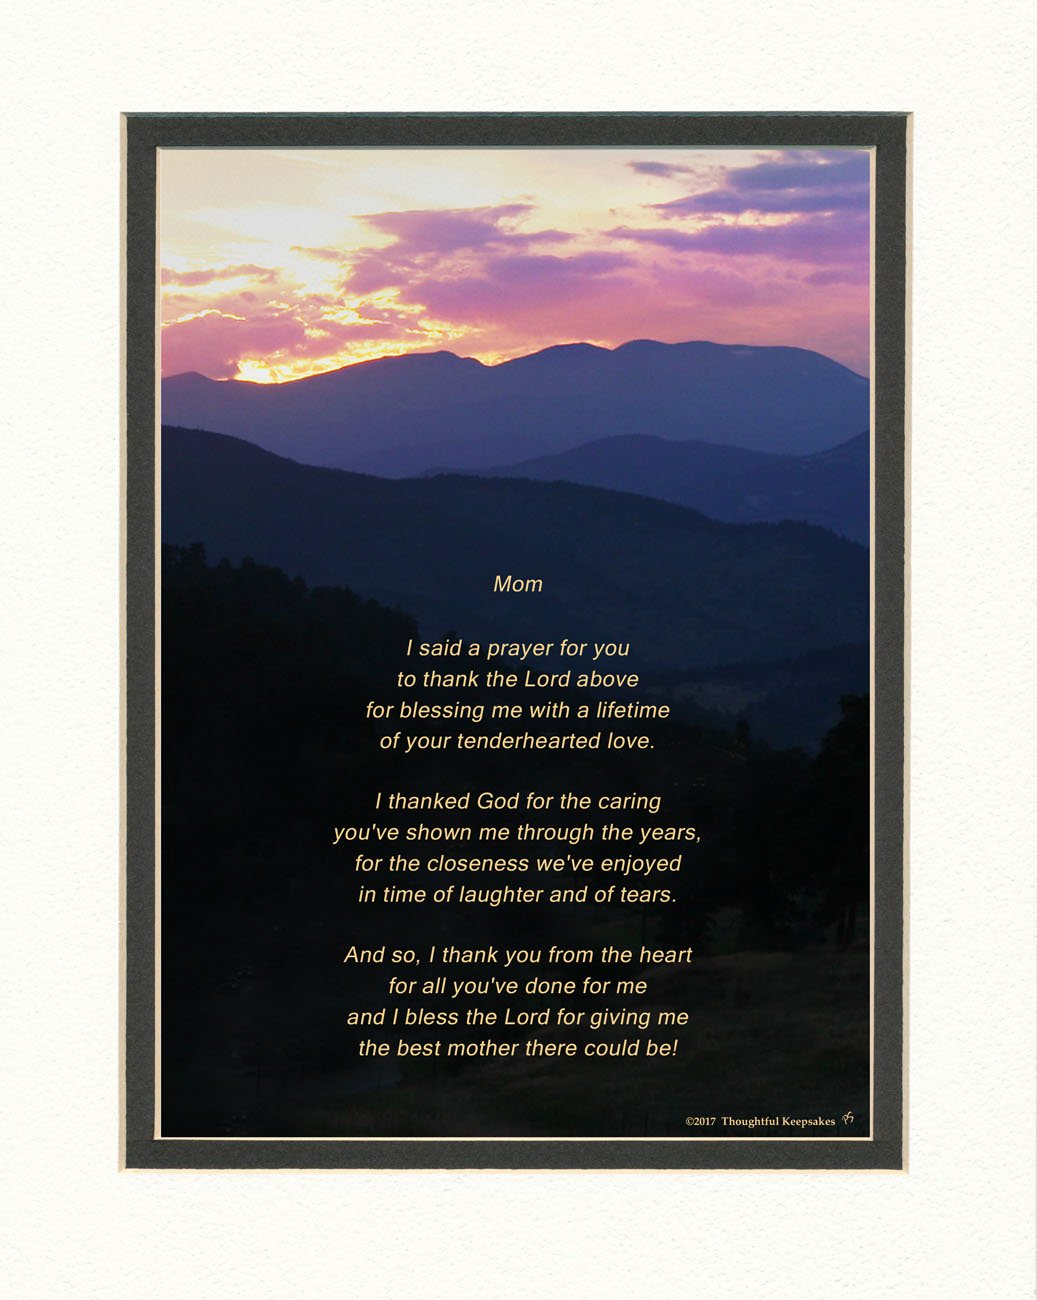 Mom - Mother Gifts Mom Gift with Thank You Prayer for Best Mom Poem. Mt Sunset Photo, 8x10 Double Matted for for Birthday, Christmas, Wedding or